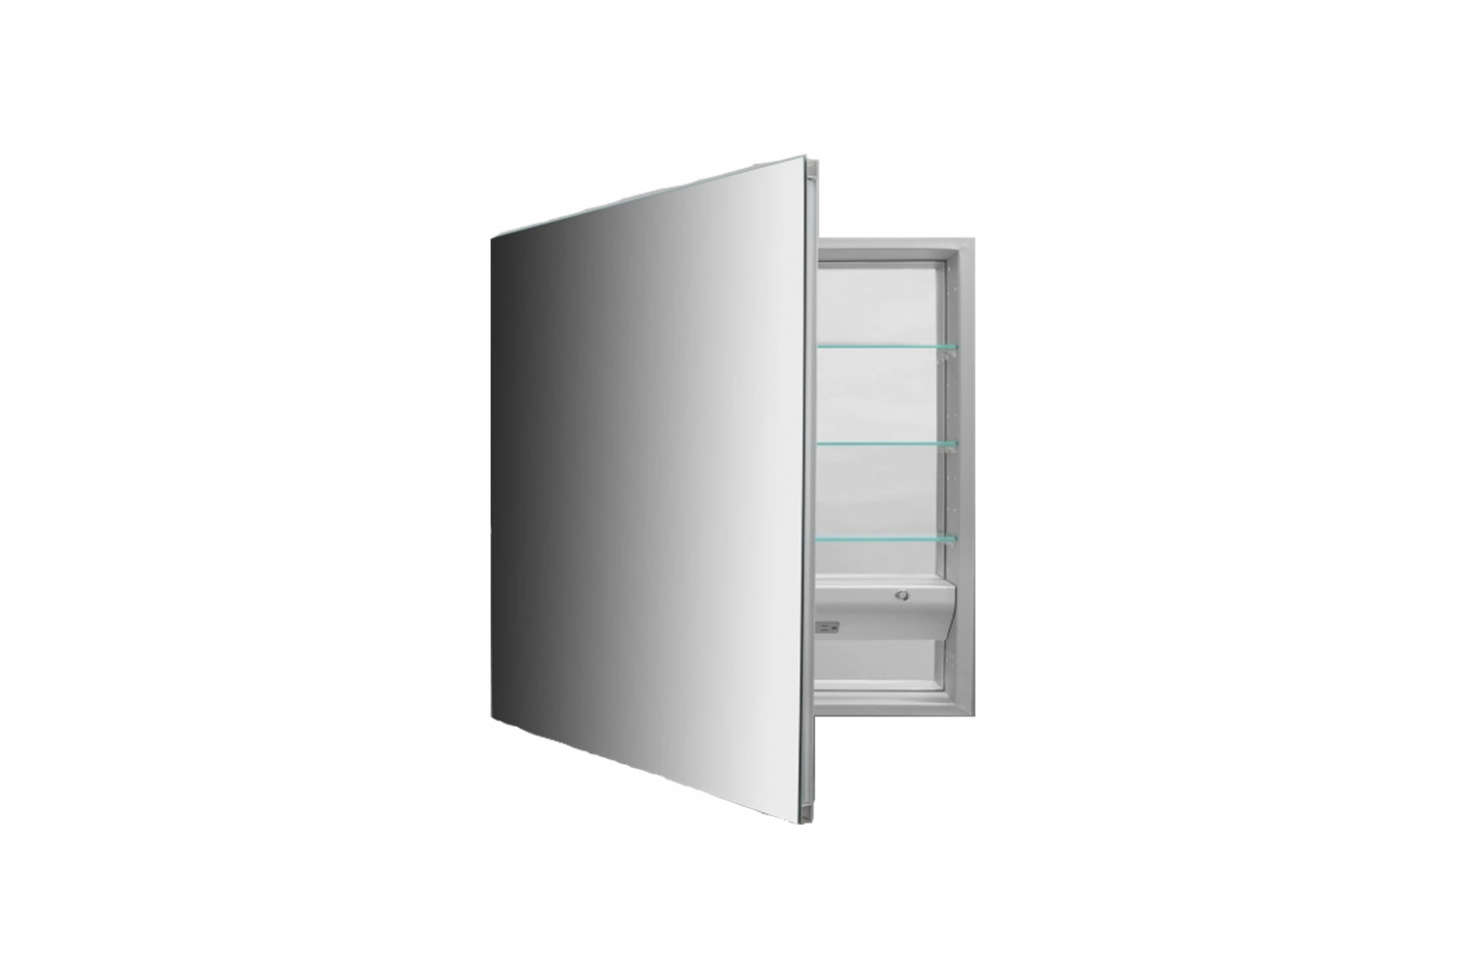 A trio of Robern M Series Customizable Mirrors are available through Robern.